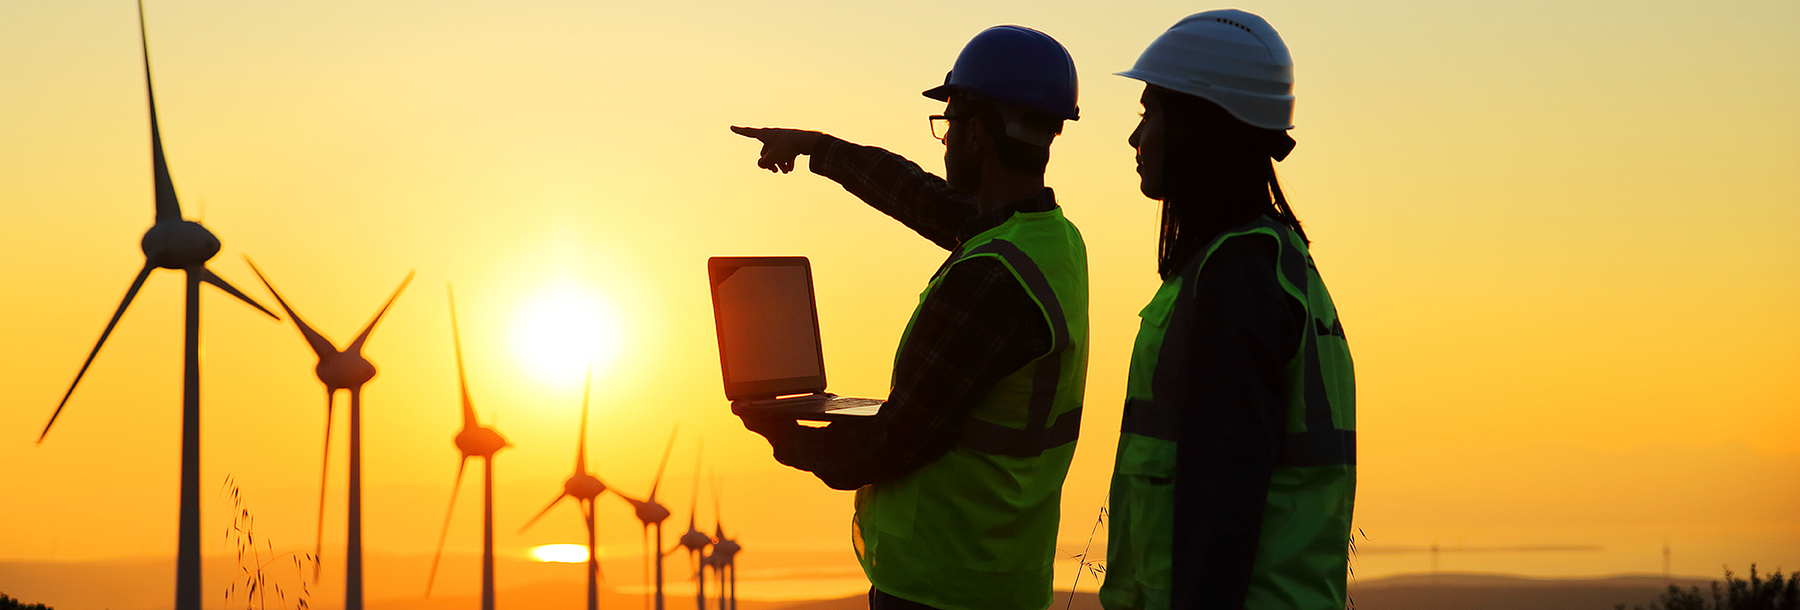 Section Image: Men with laptop observing windmills at sunset